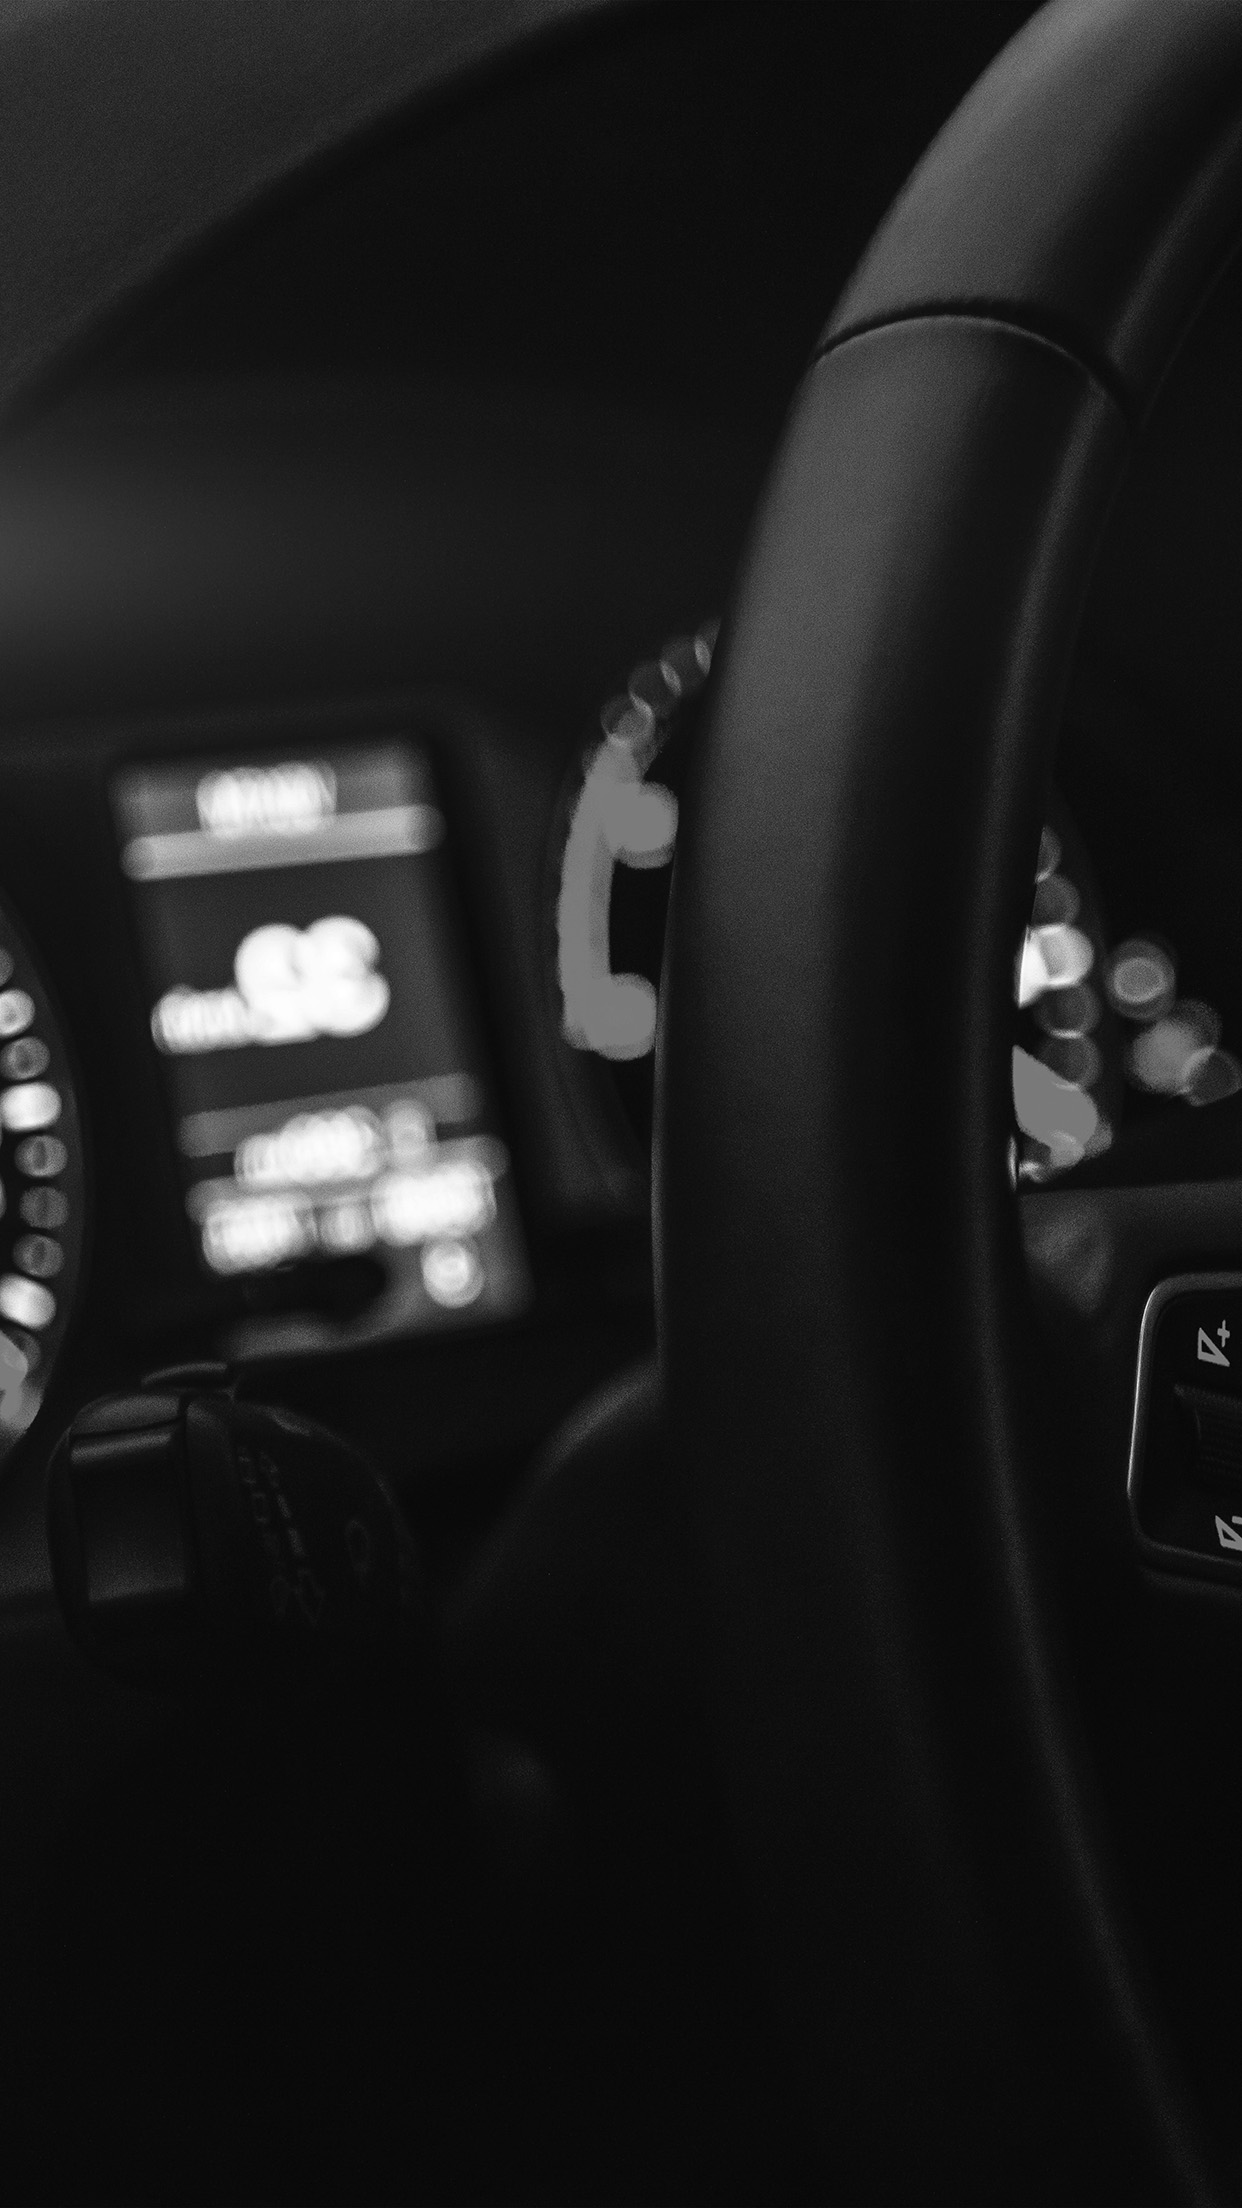 Cute Black And White Disney Desktop Wallpapers Papers Co Iphone Wallpaper Mw16 Car Audi Drive